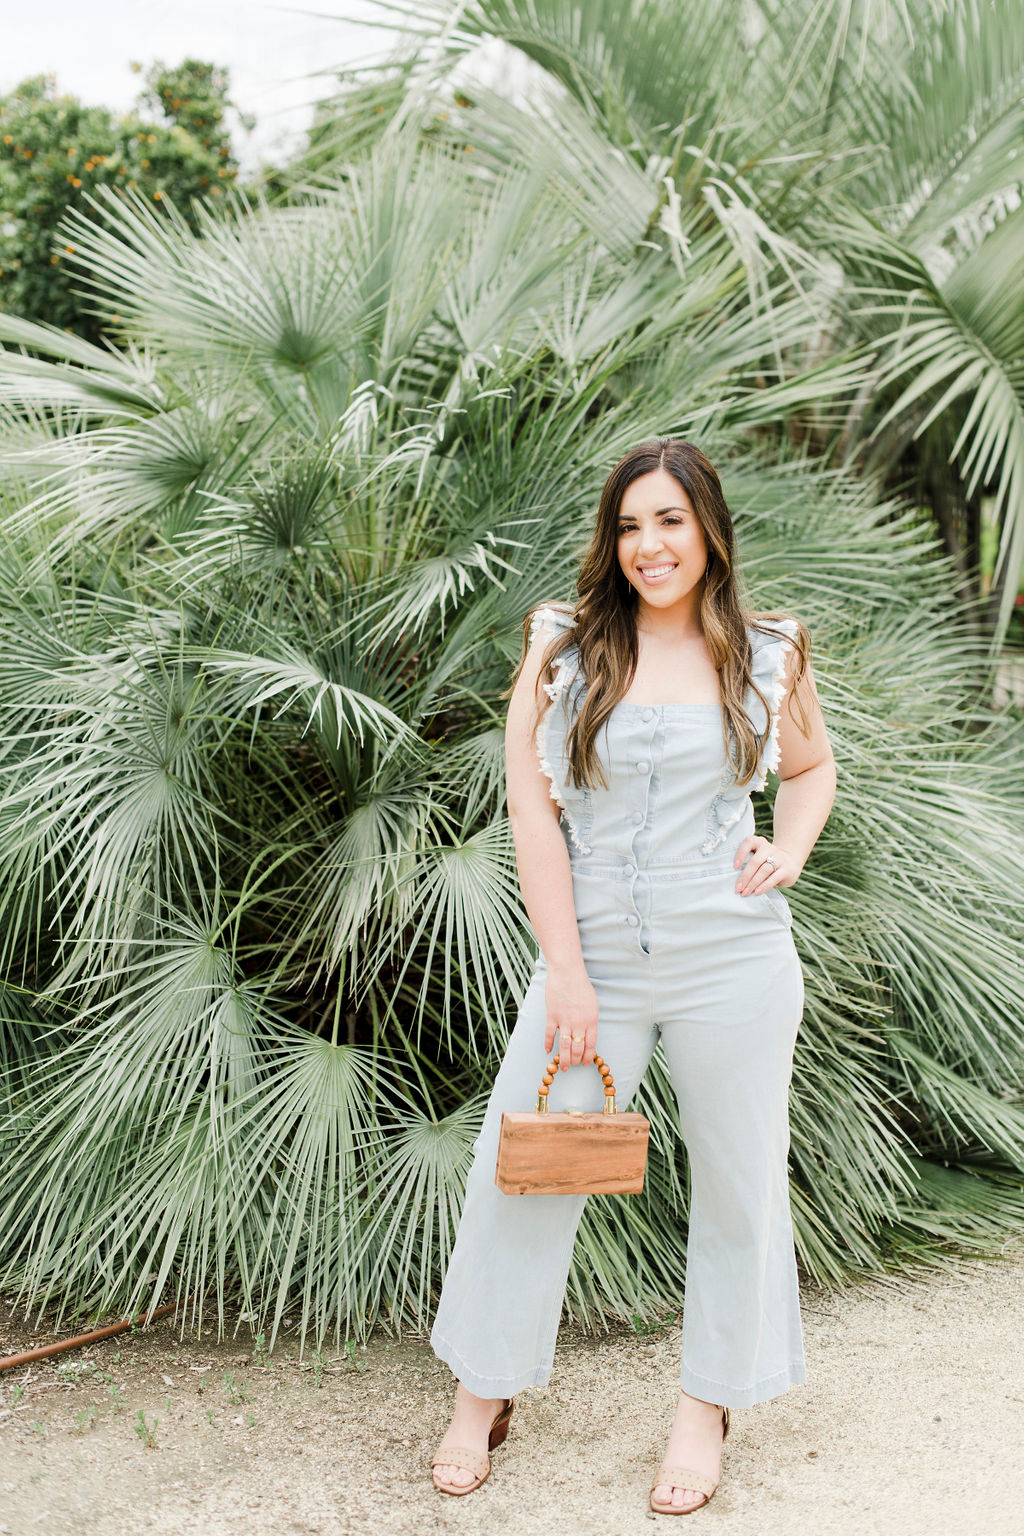 5 Tips When Shopping For Jumpsuits For A Pear Shaped Body